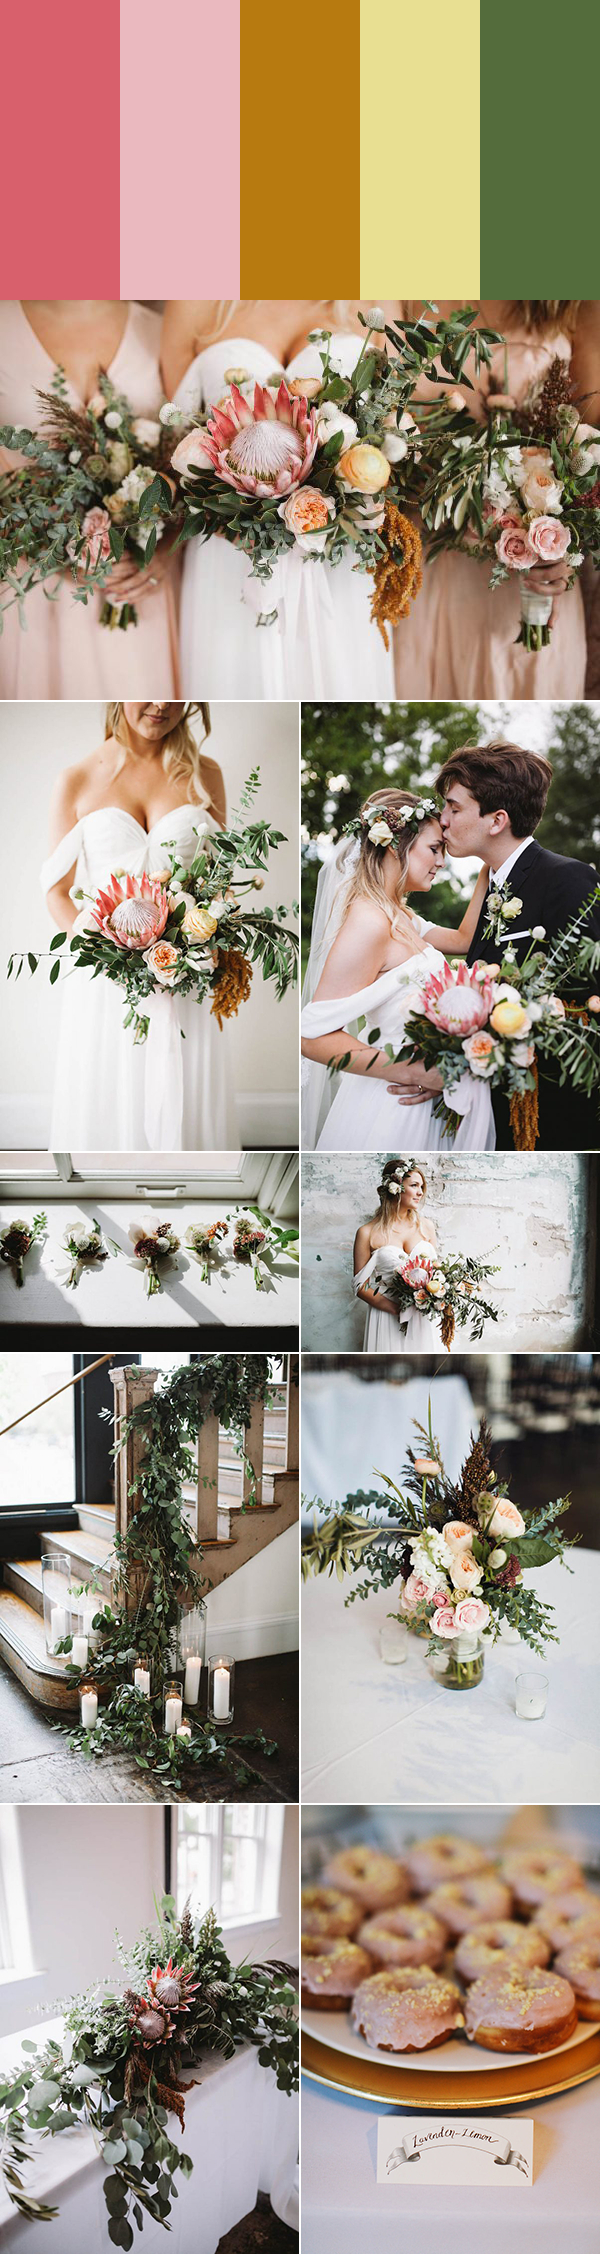 Rustic Wedding Colors 5 Rustic Wedding Color Palette Ideas Junebug Weddings